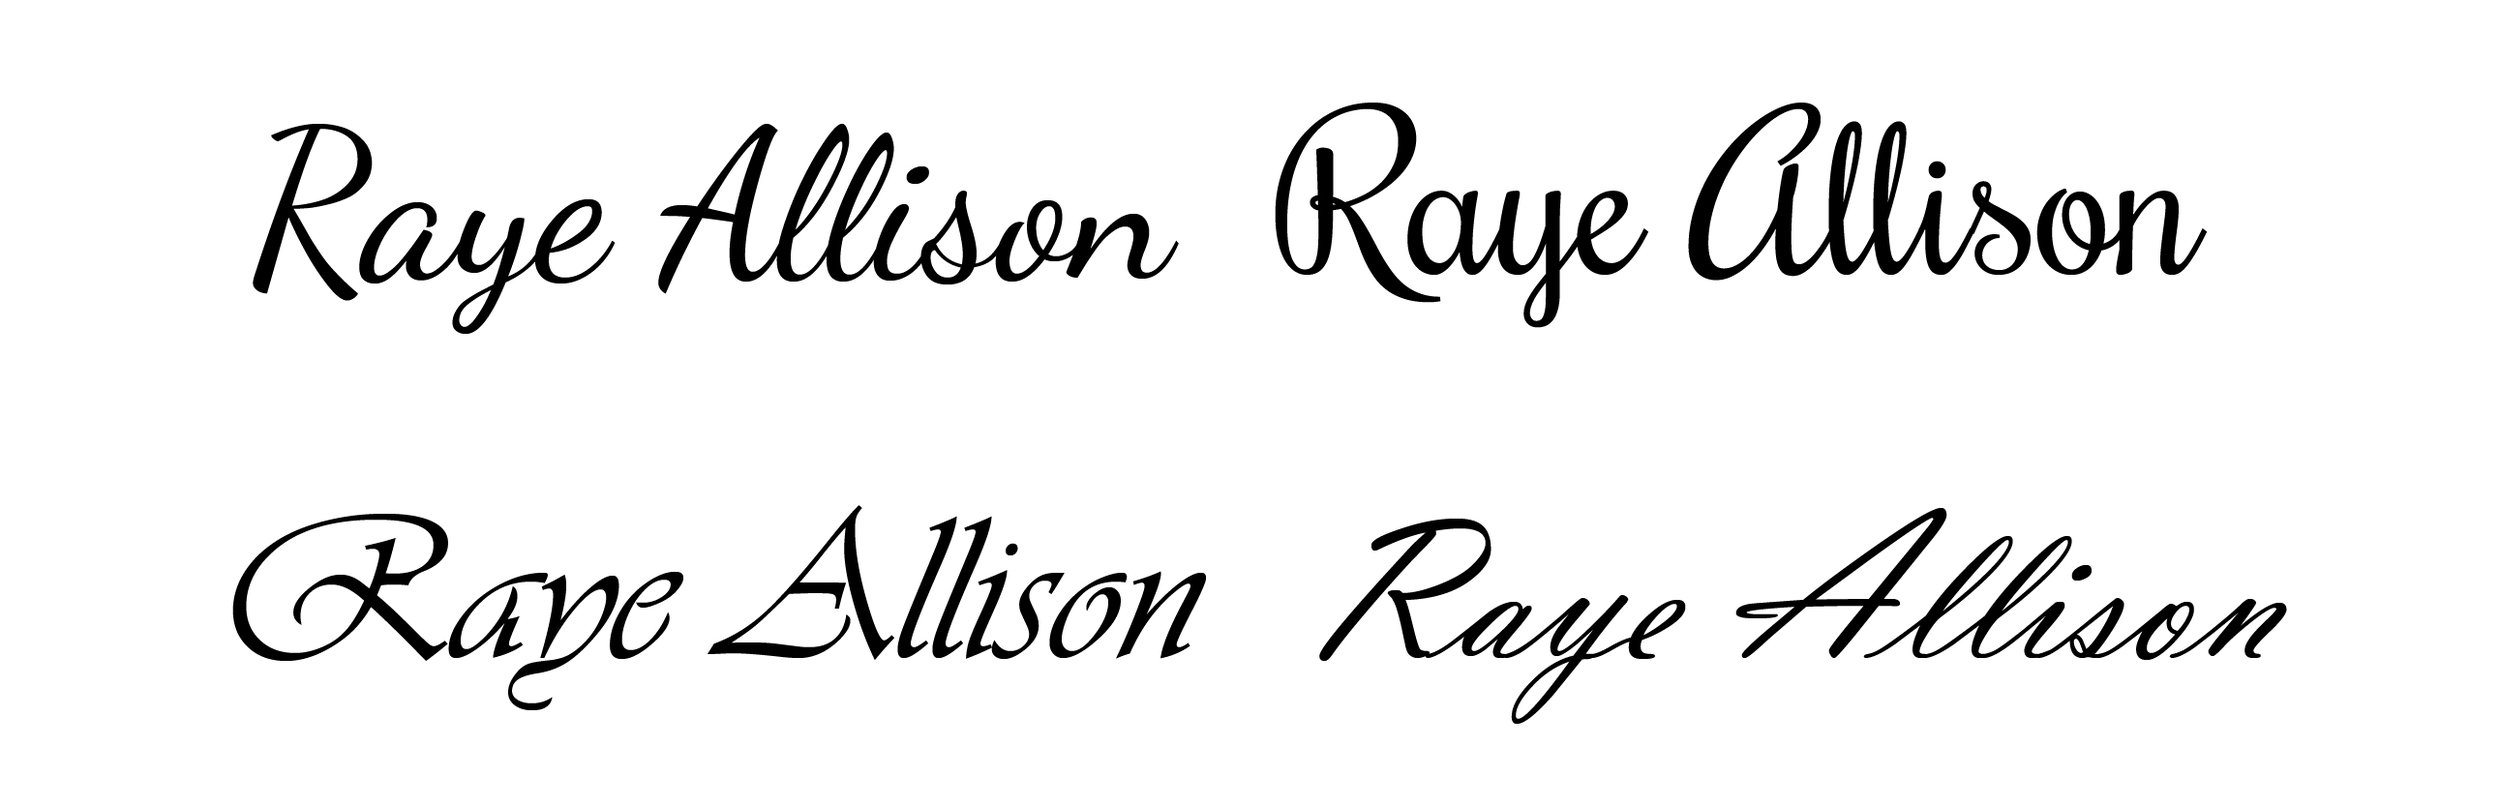 Script typefaces are based on a cursive or handwriting style.